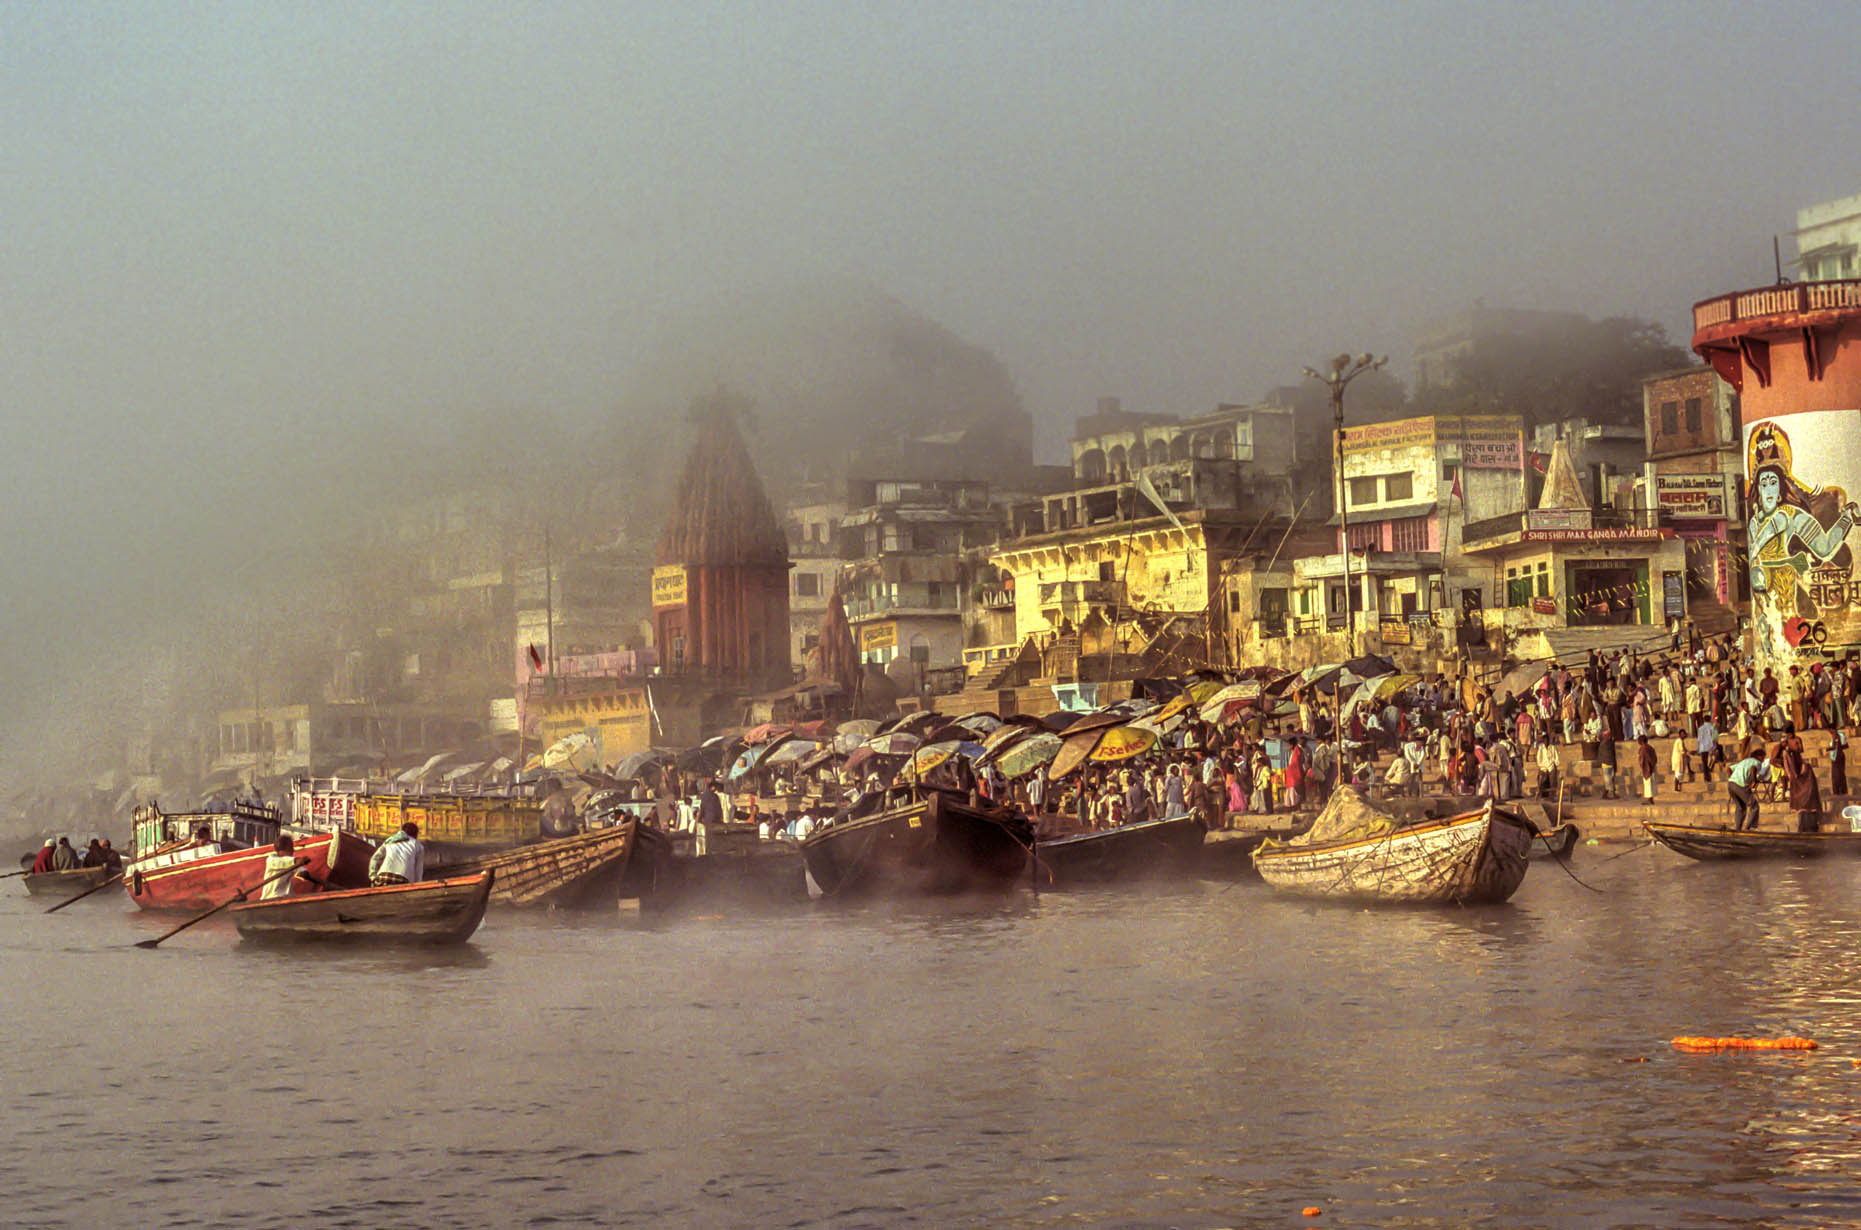 Early morning on the Ganges.